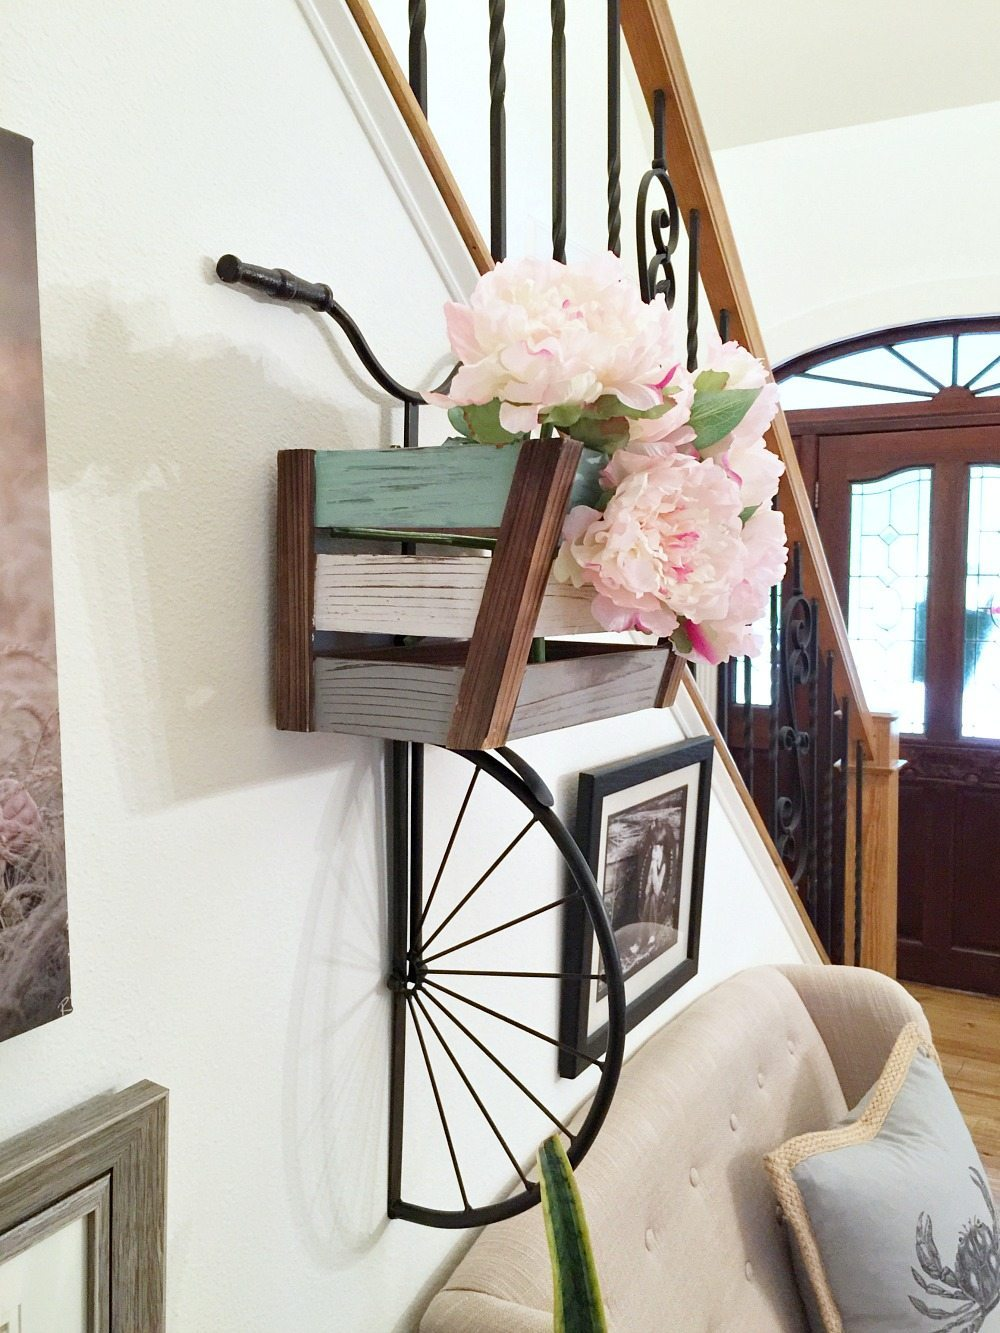 Cutest half bike for the wall with peonies